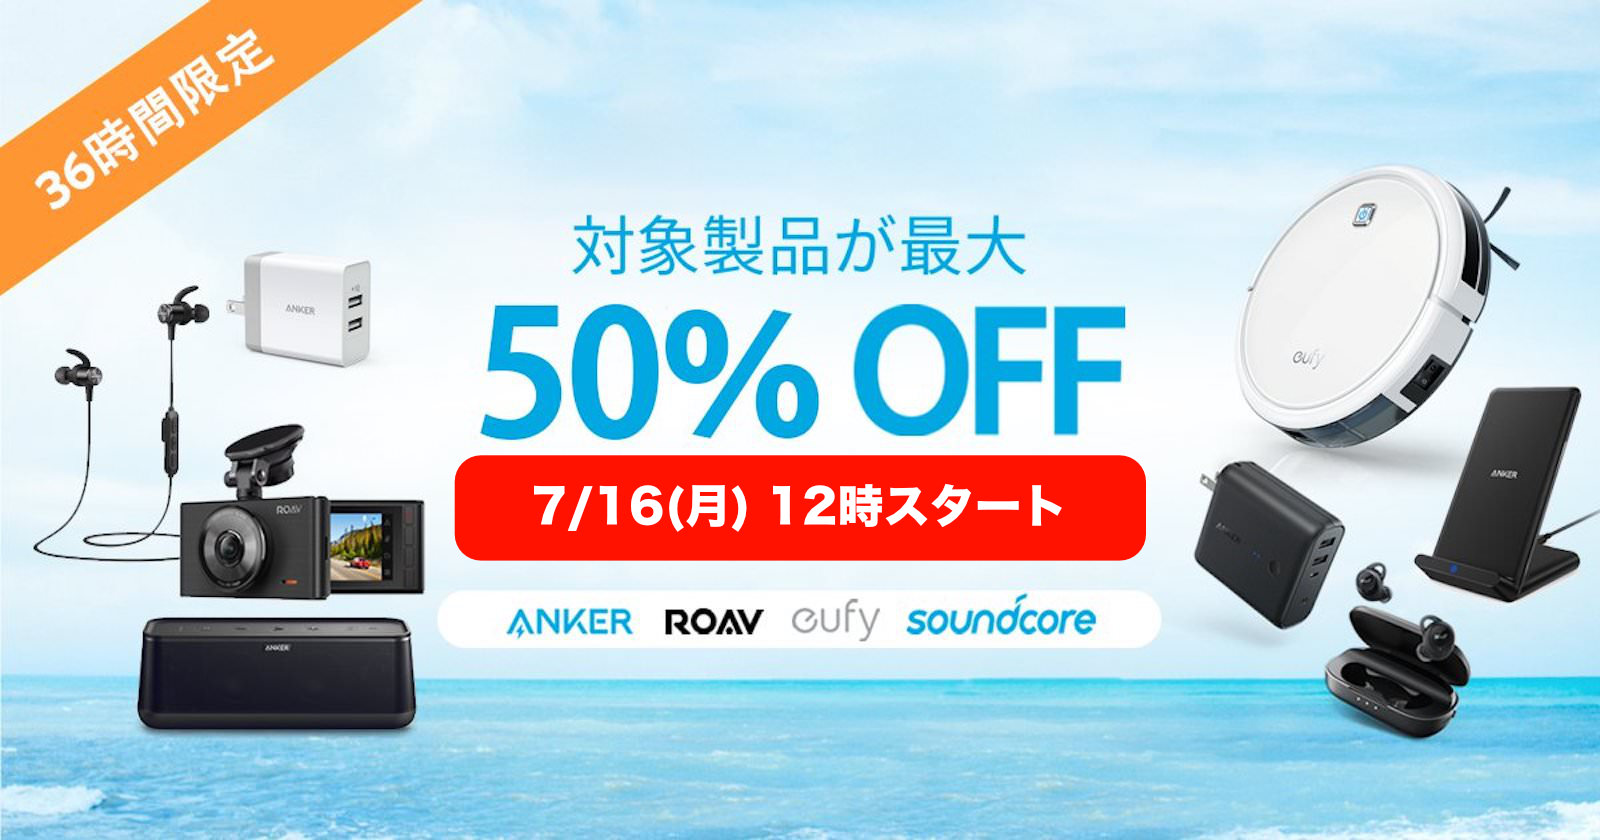 Anker Prime Day Sale 2018 Before